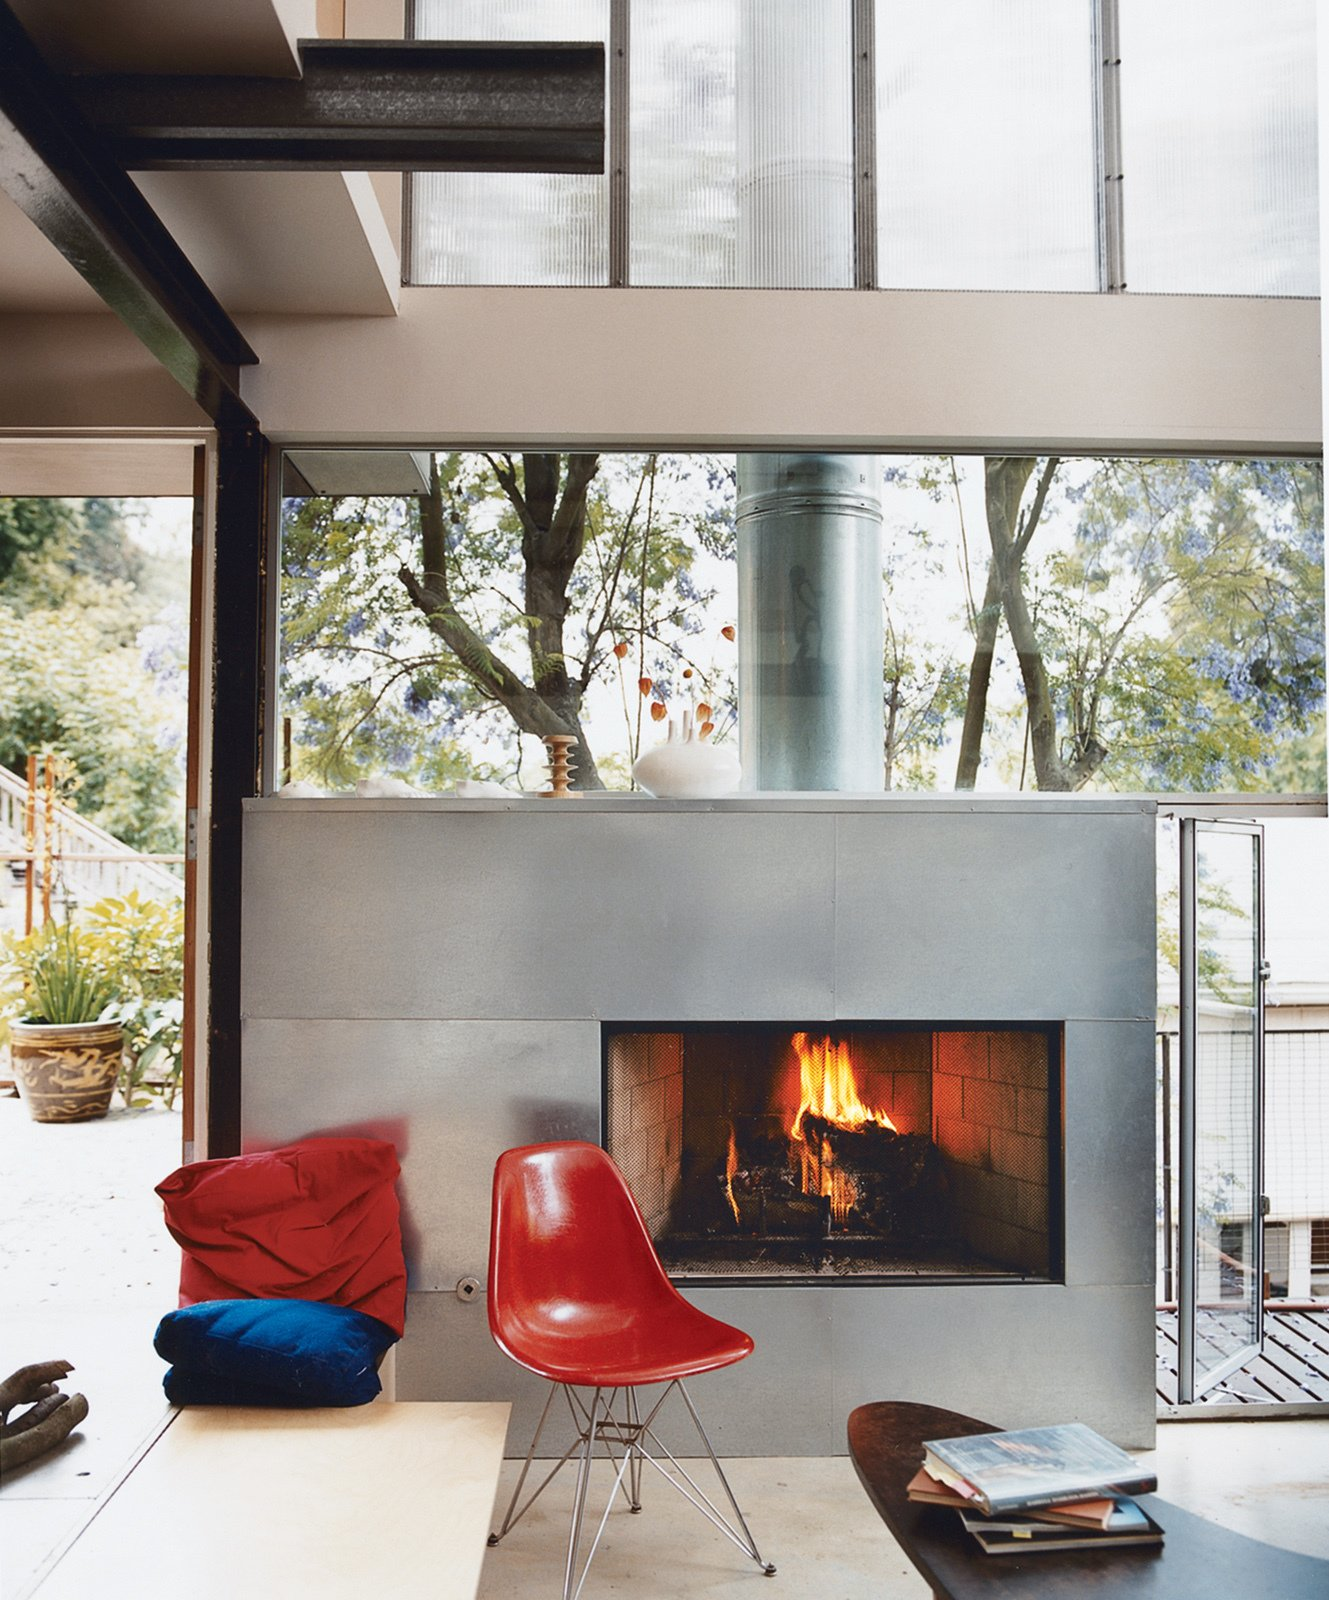 Living Room, Chair, Bench, Coffee Tables, Standard Layout Fireplace, and Wood Burning Fireplace Architects Alice Fung and Michael Blatt designed their own home in Los Angeles, complete with a modern fireplace design clad in galvanized steel.  Photo 4 of 9 in How This Couple Broke The Rules in a LA Suburb